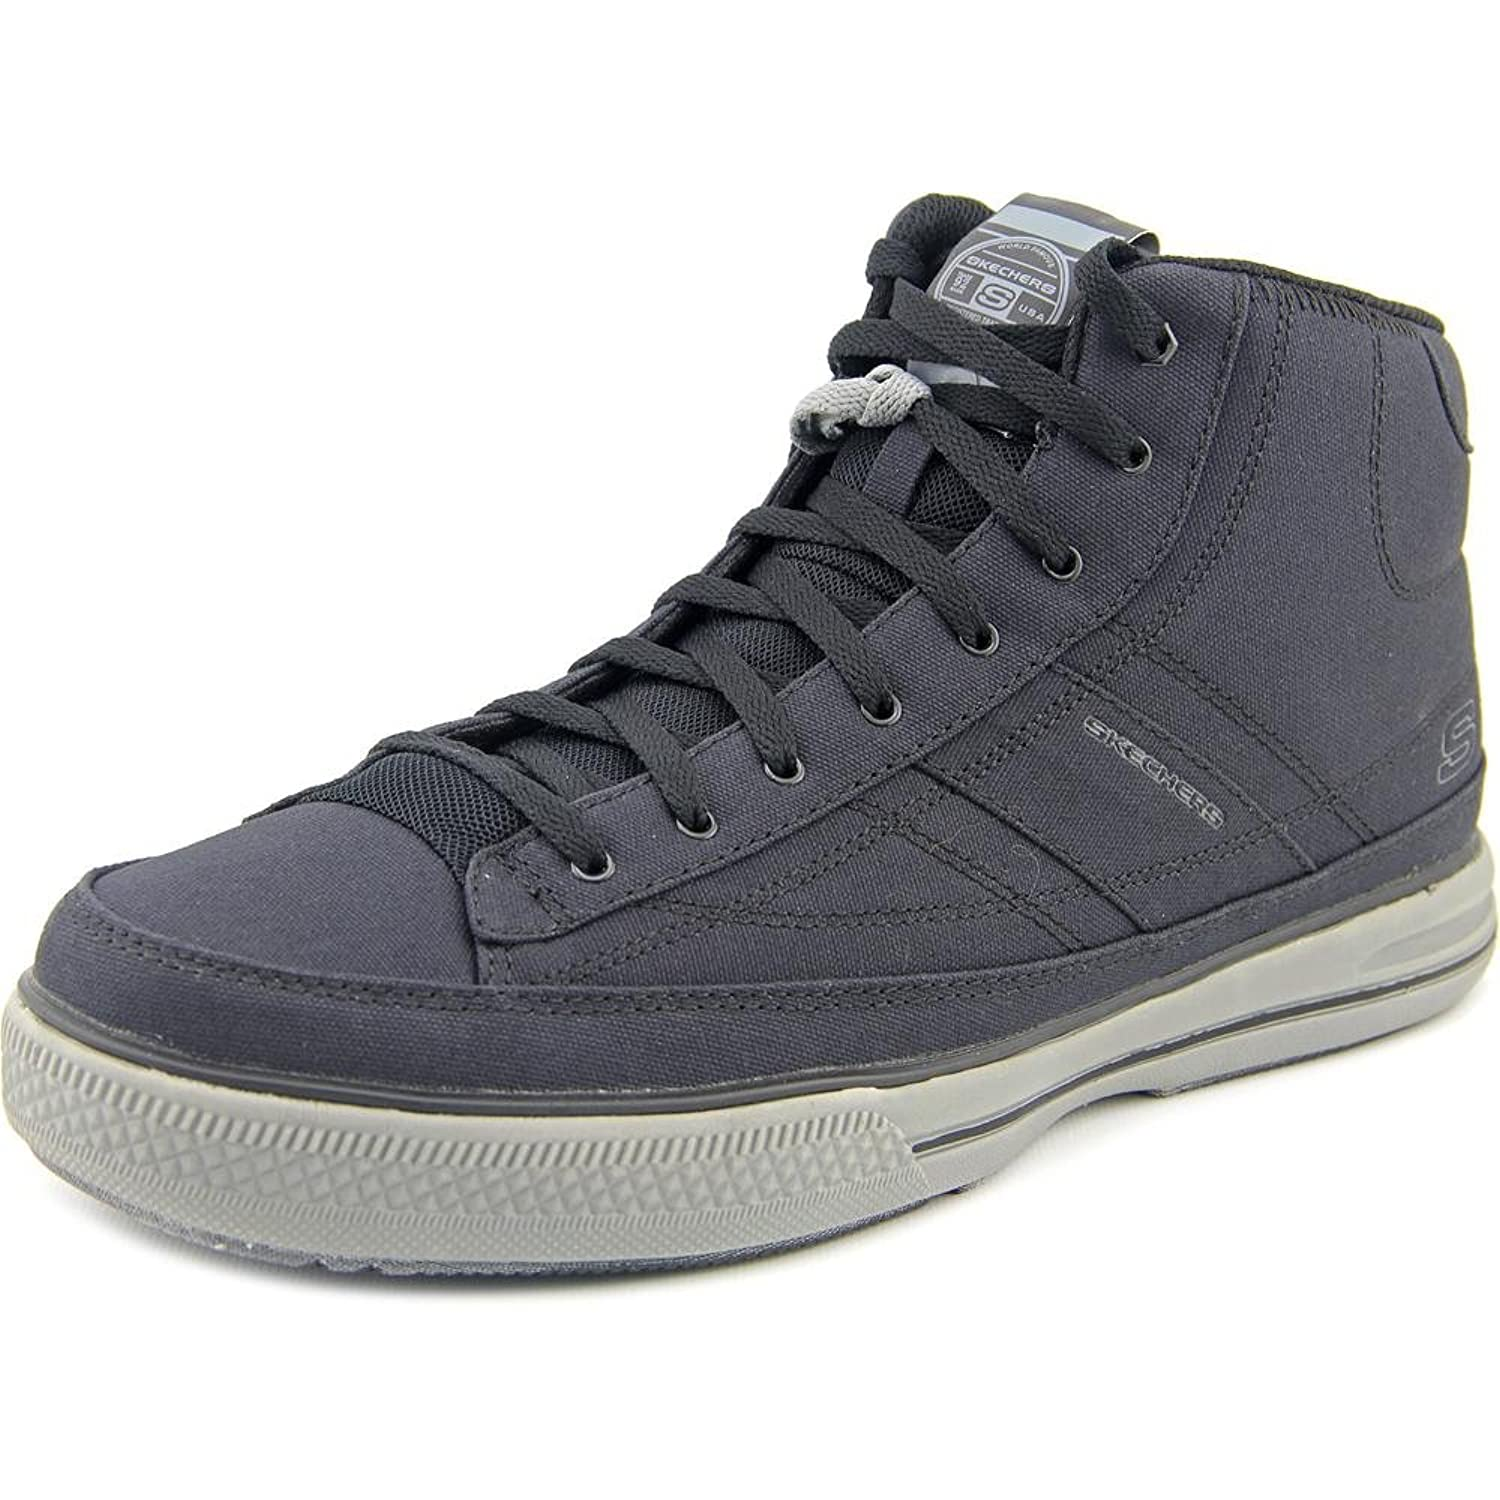 3f545d95eb27 Skechers Men s Relaxed Fit Arcade II Aurail High Top durable modeling